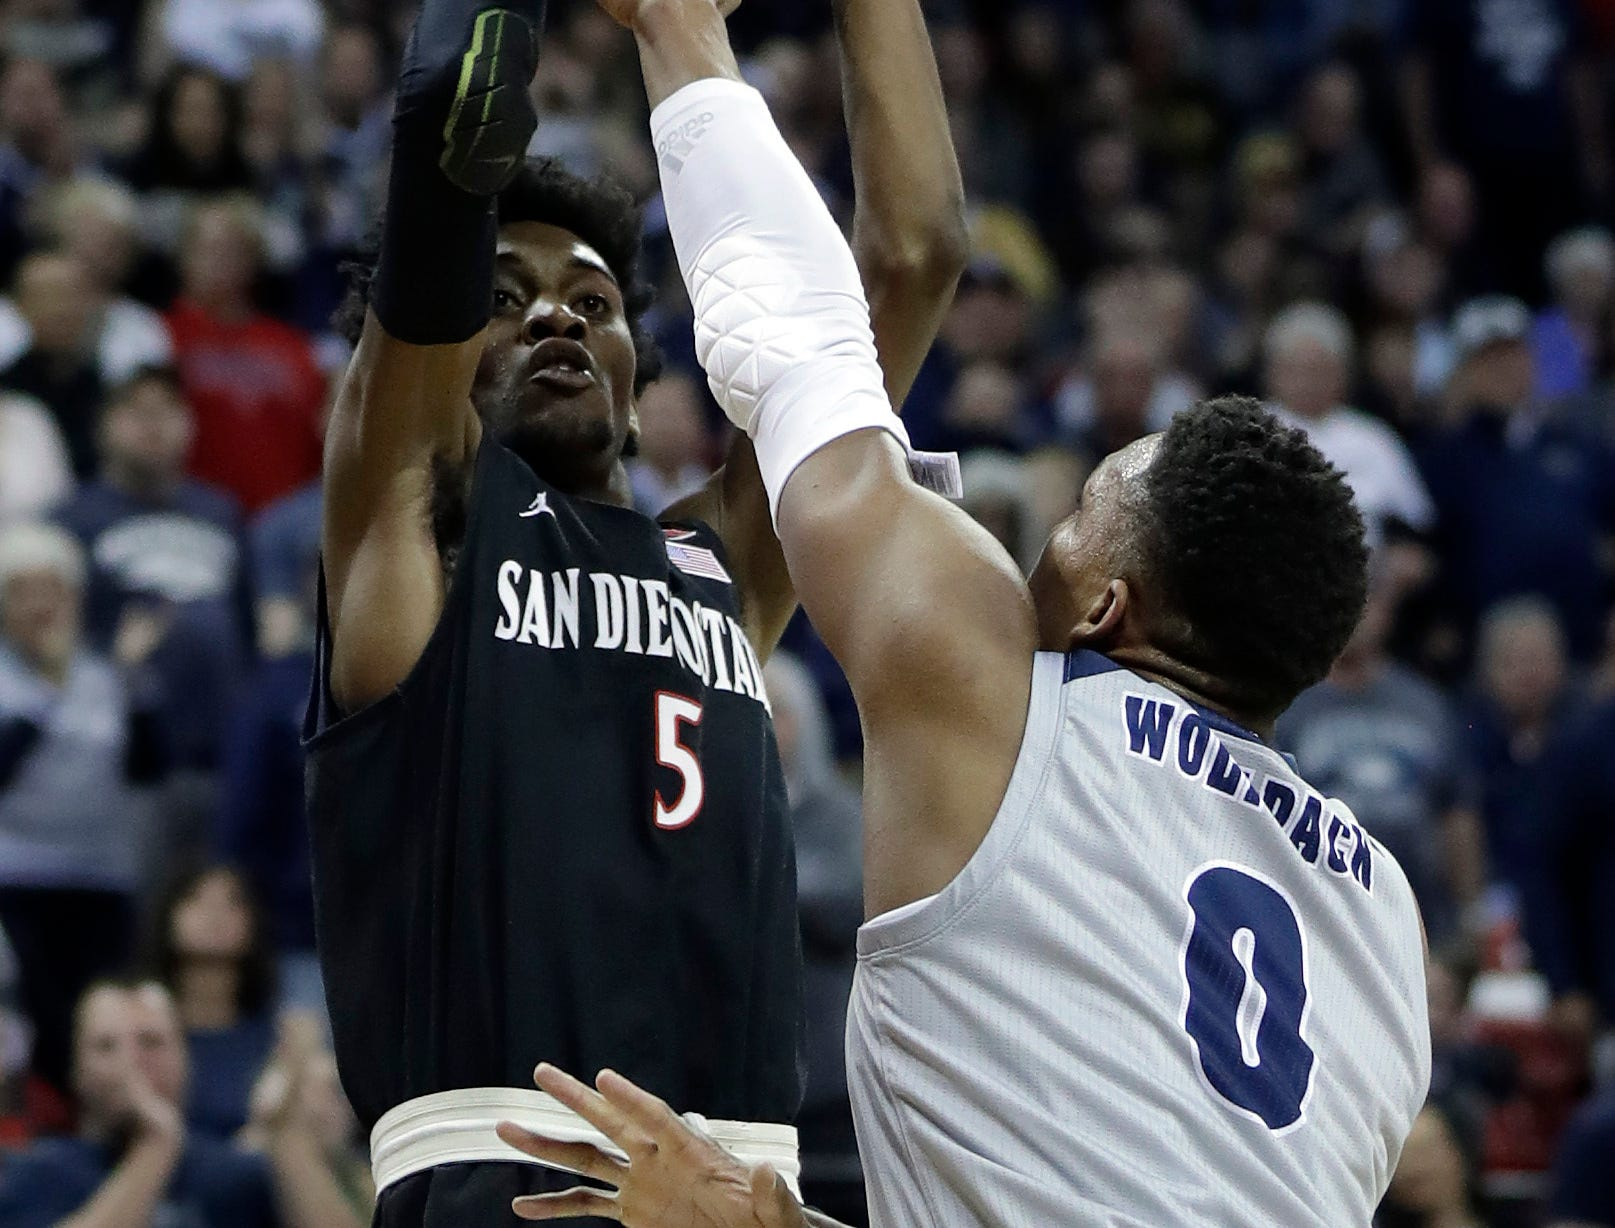 San Diego State's Jalen McDaniels shoots as Nevada's Tre'Shawn Thurman defends during the second half of an NCAA college basketball game in the Mountain West Conference men's tournament Friday, March 15, 2019, in Las Vegas. (AP Photo/Isaac Brekken)